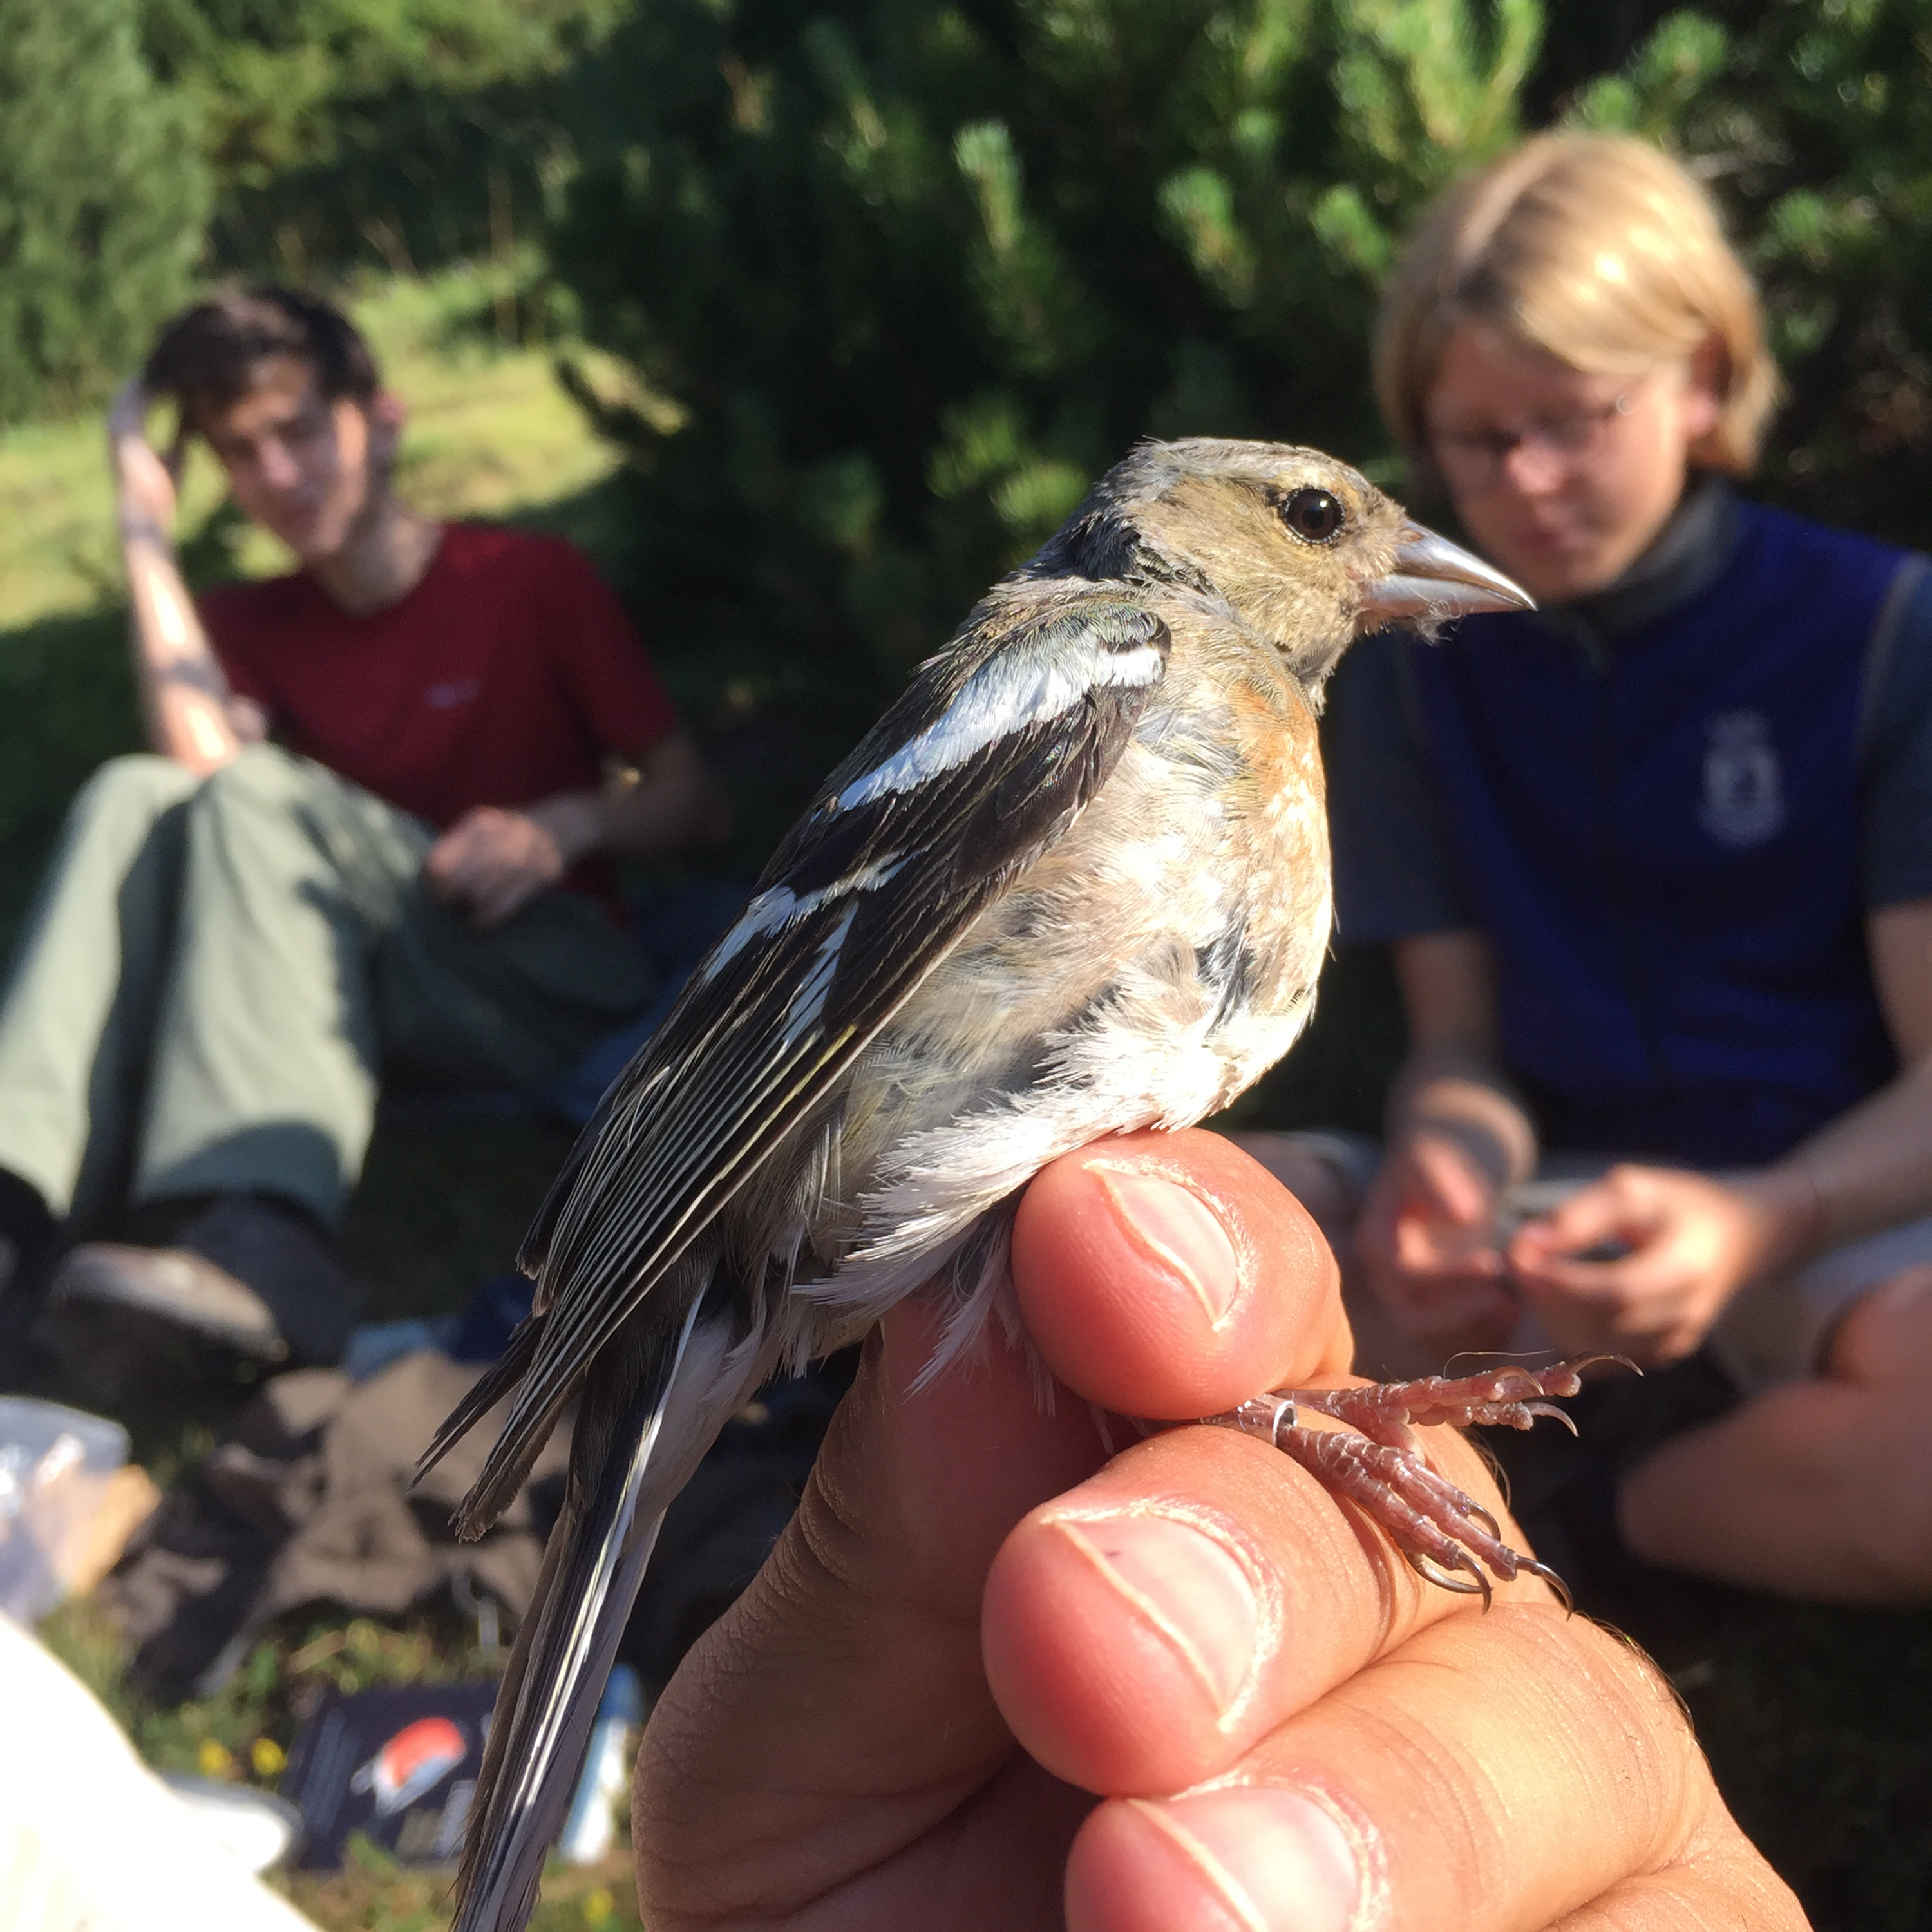 Student groups have a variety of expedition options including hiking the Andorran Pyrenees searching for signs of climate-related stress in birds and other wildlife.